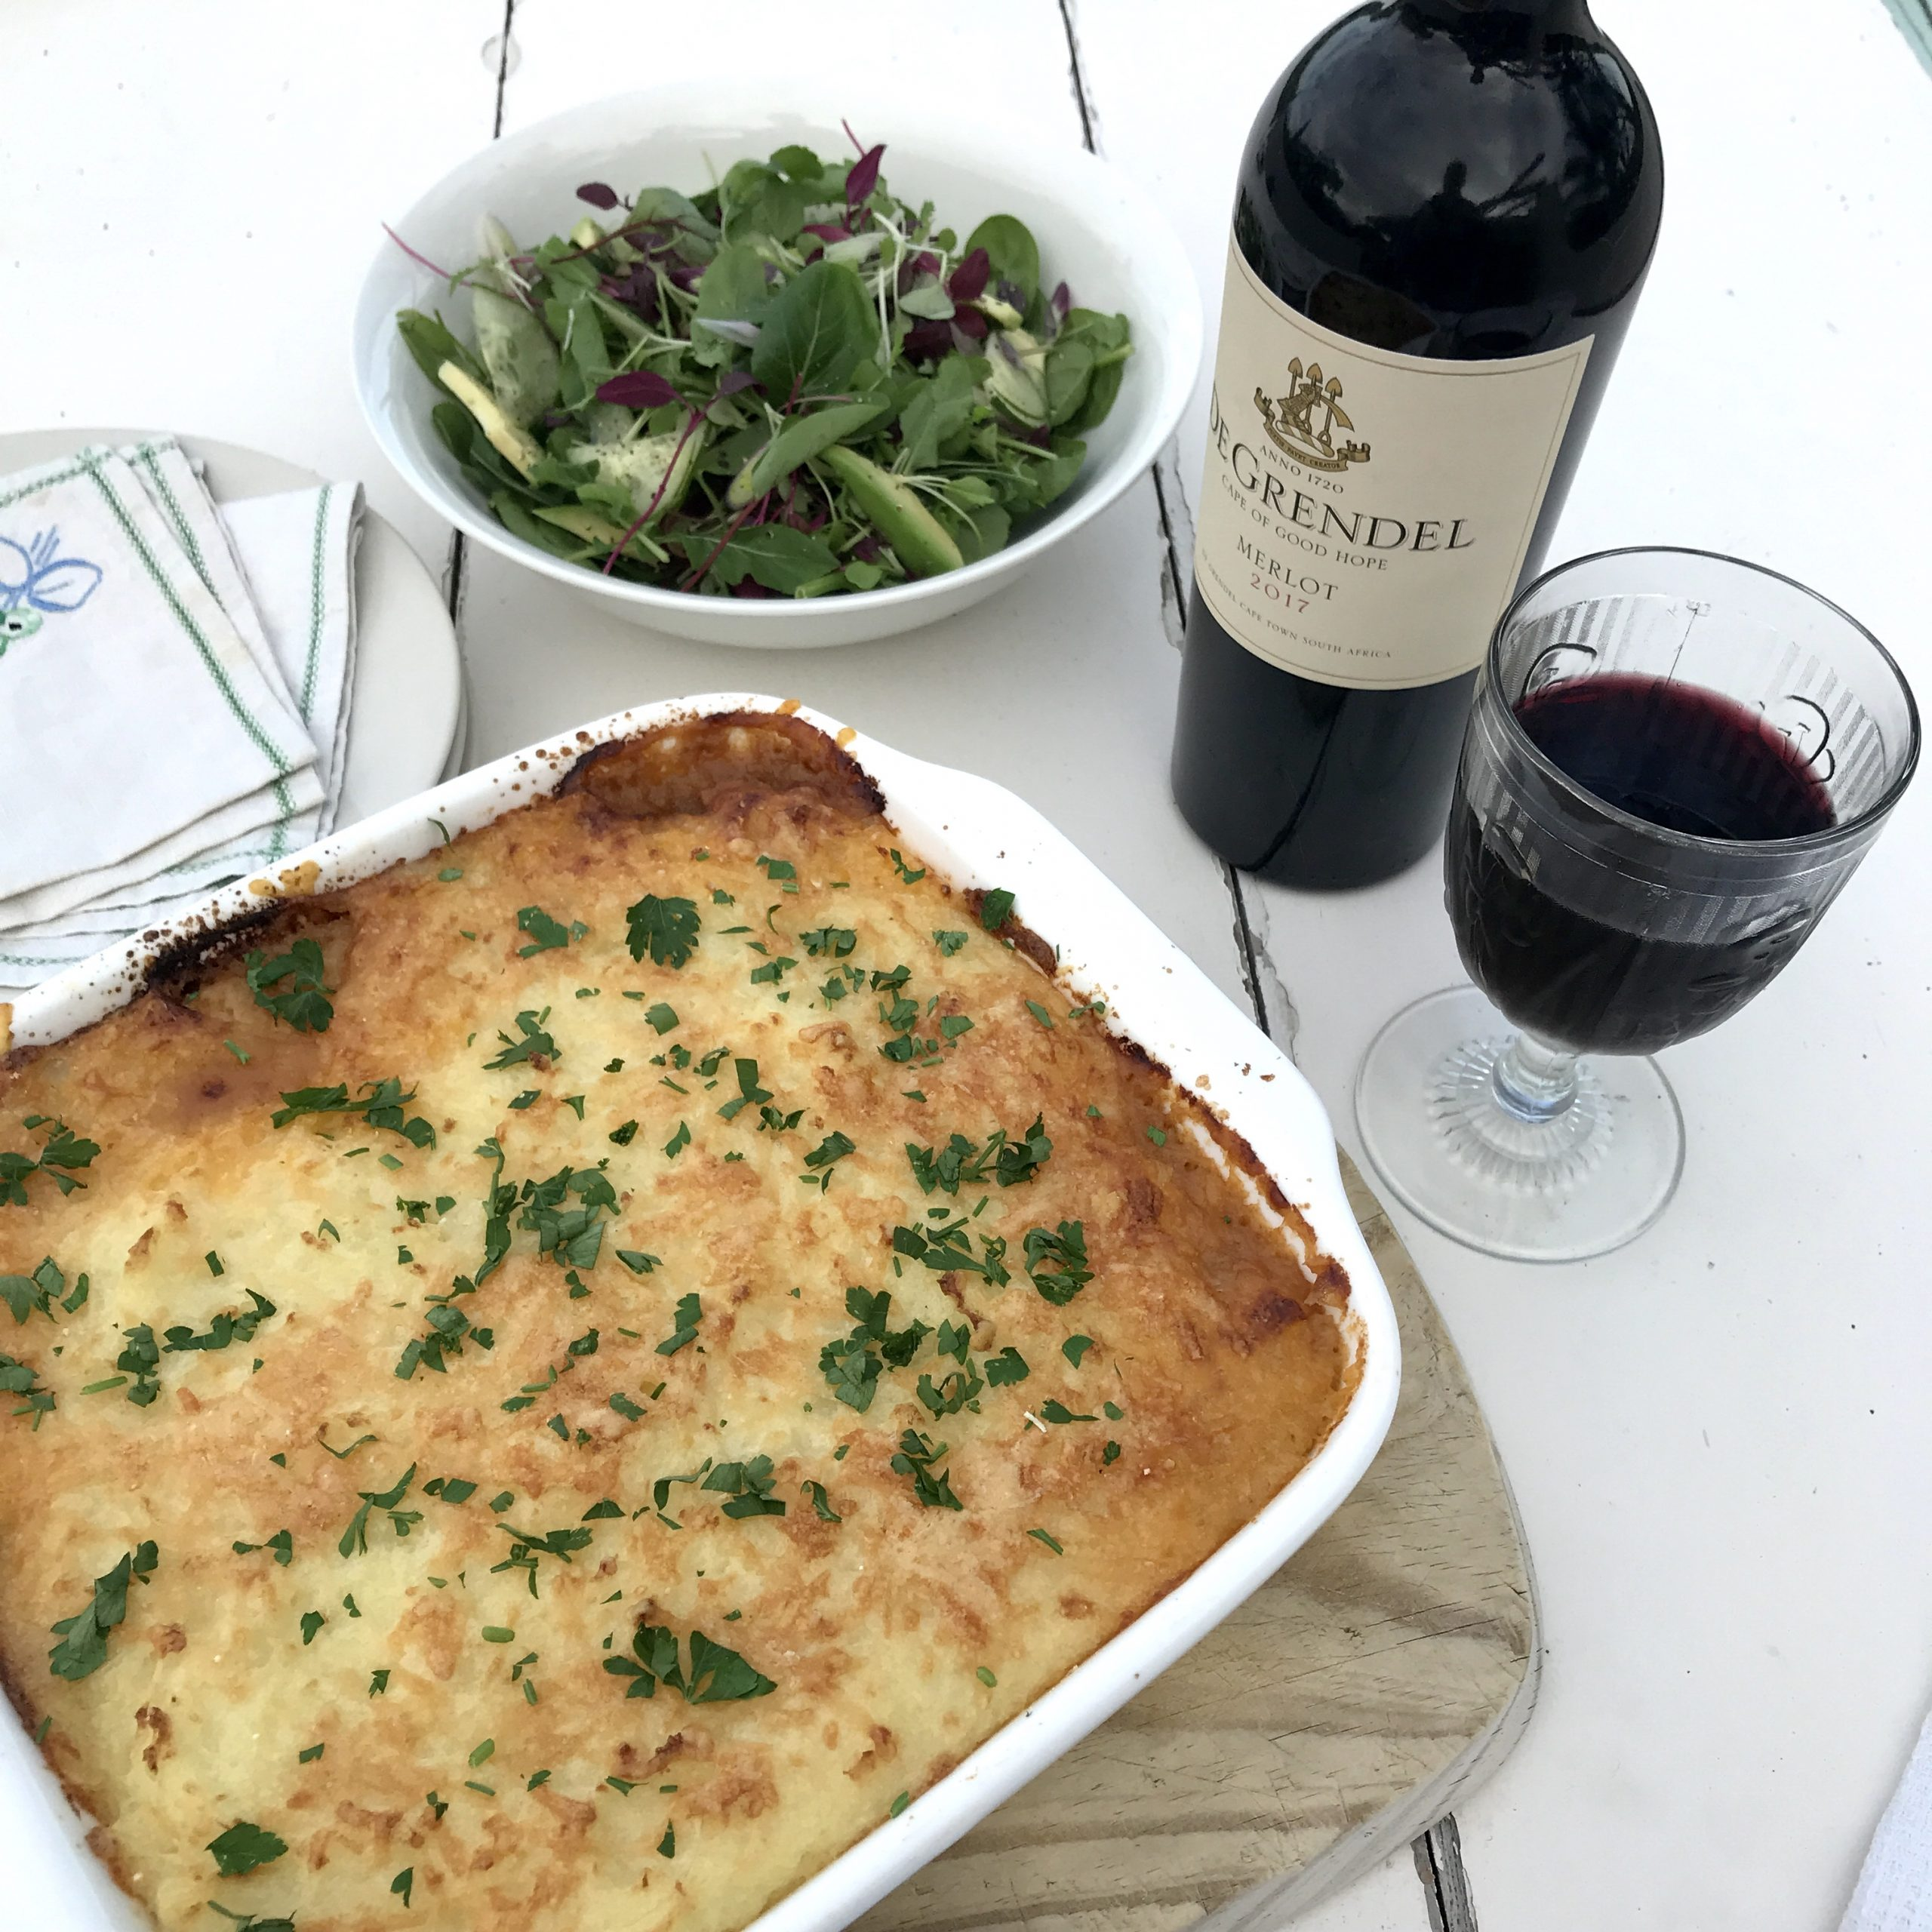 Chef Ian's Shepherd's Pie with Parmesan and De Grendel Merlot photo